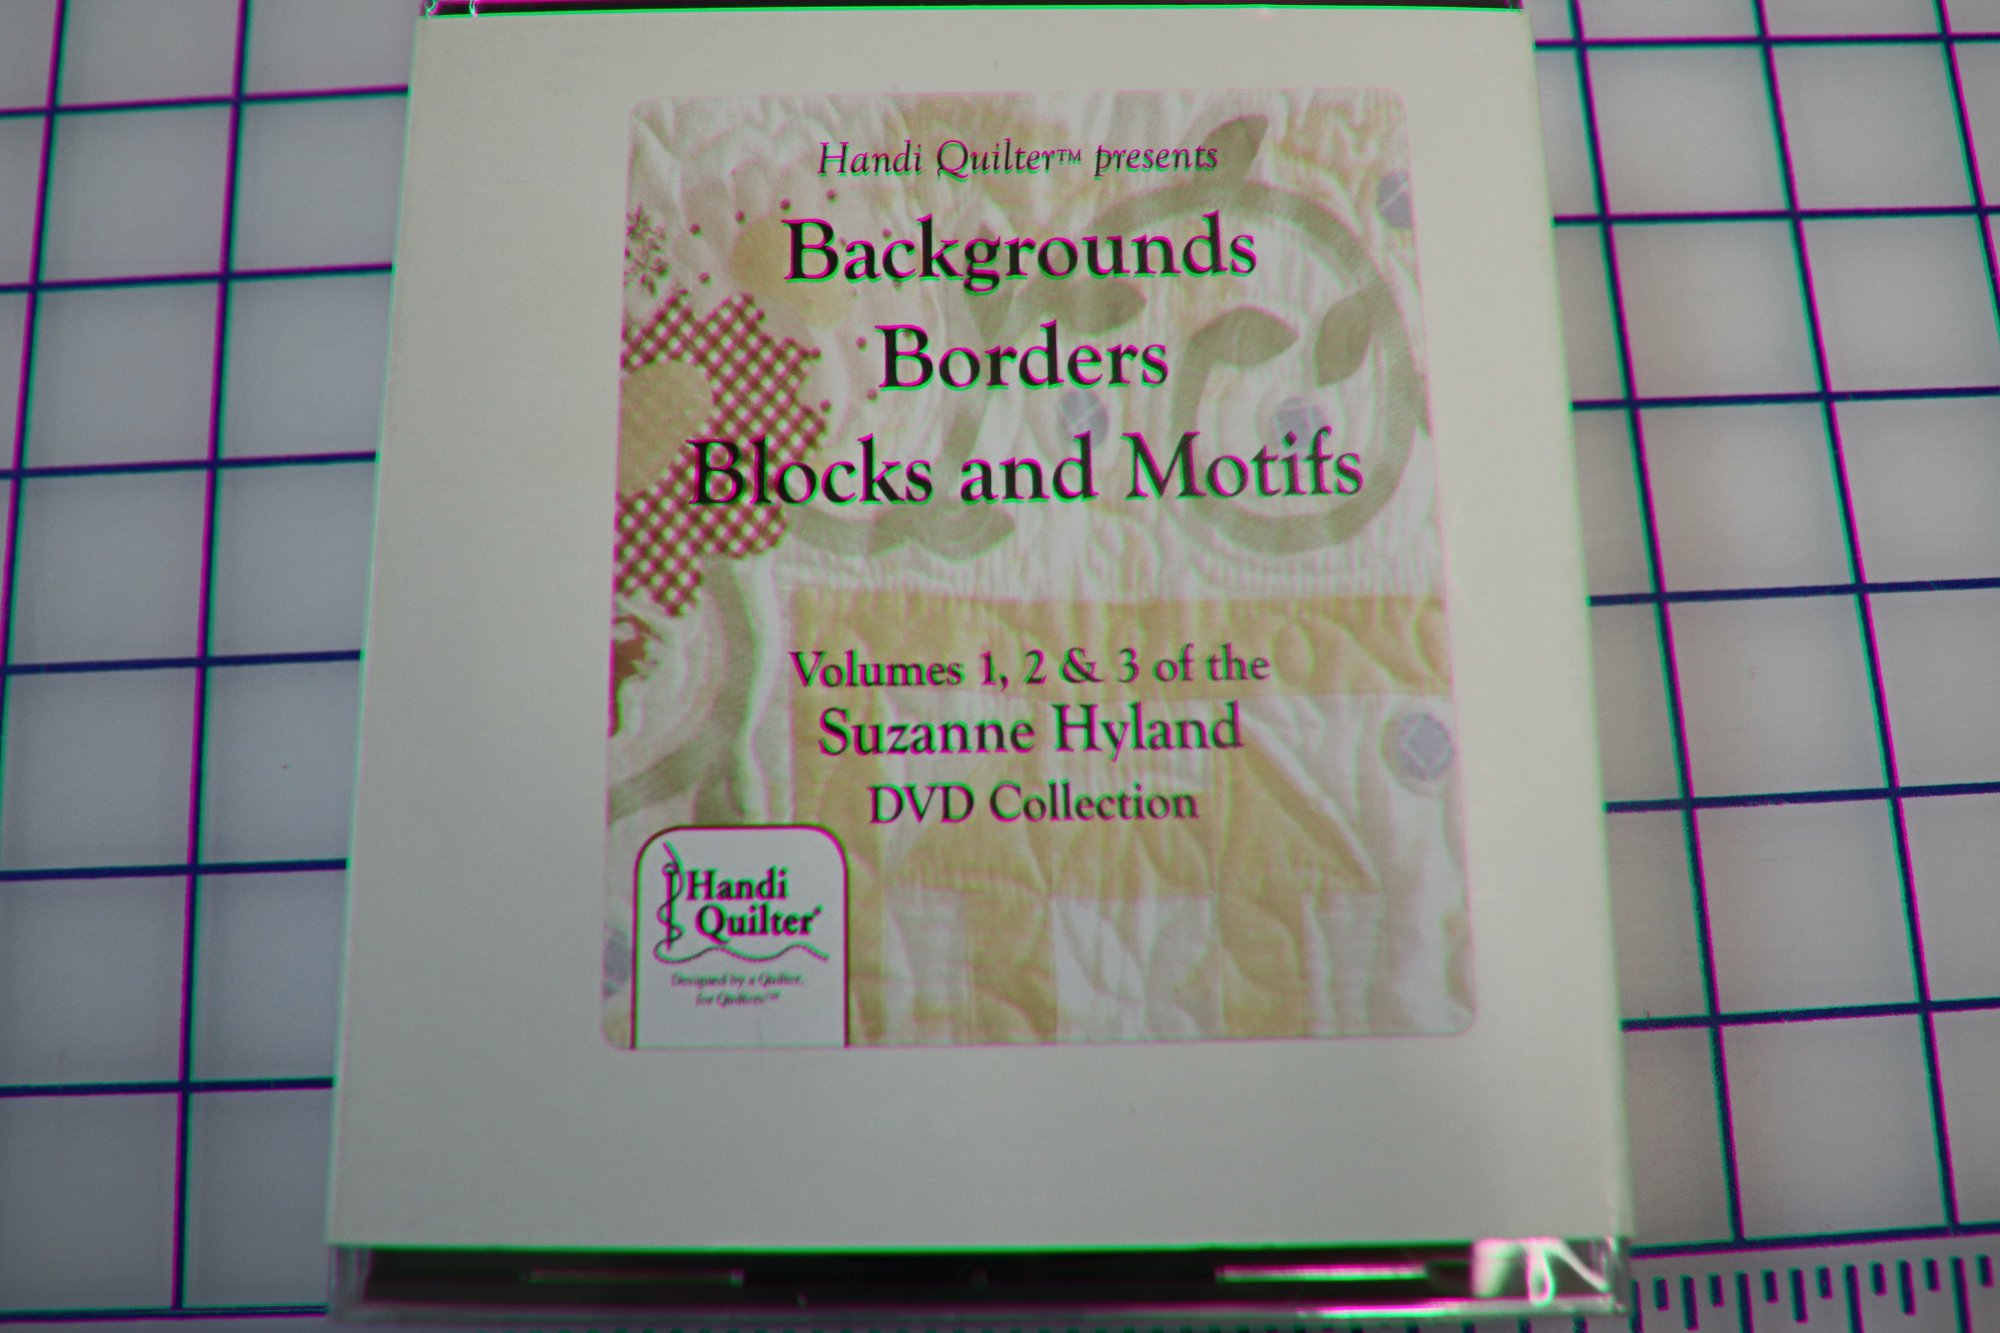 Handi Quilter Presents Background Borders Blocks and Motifs Volumse 1,2, & 3 Suzanne Hyland DVD Collection